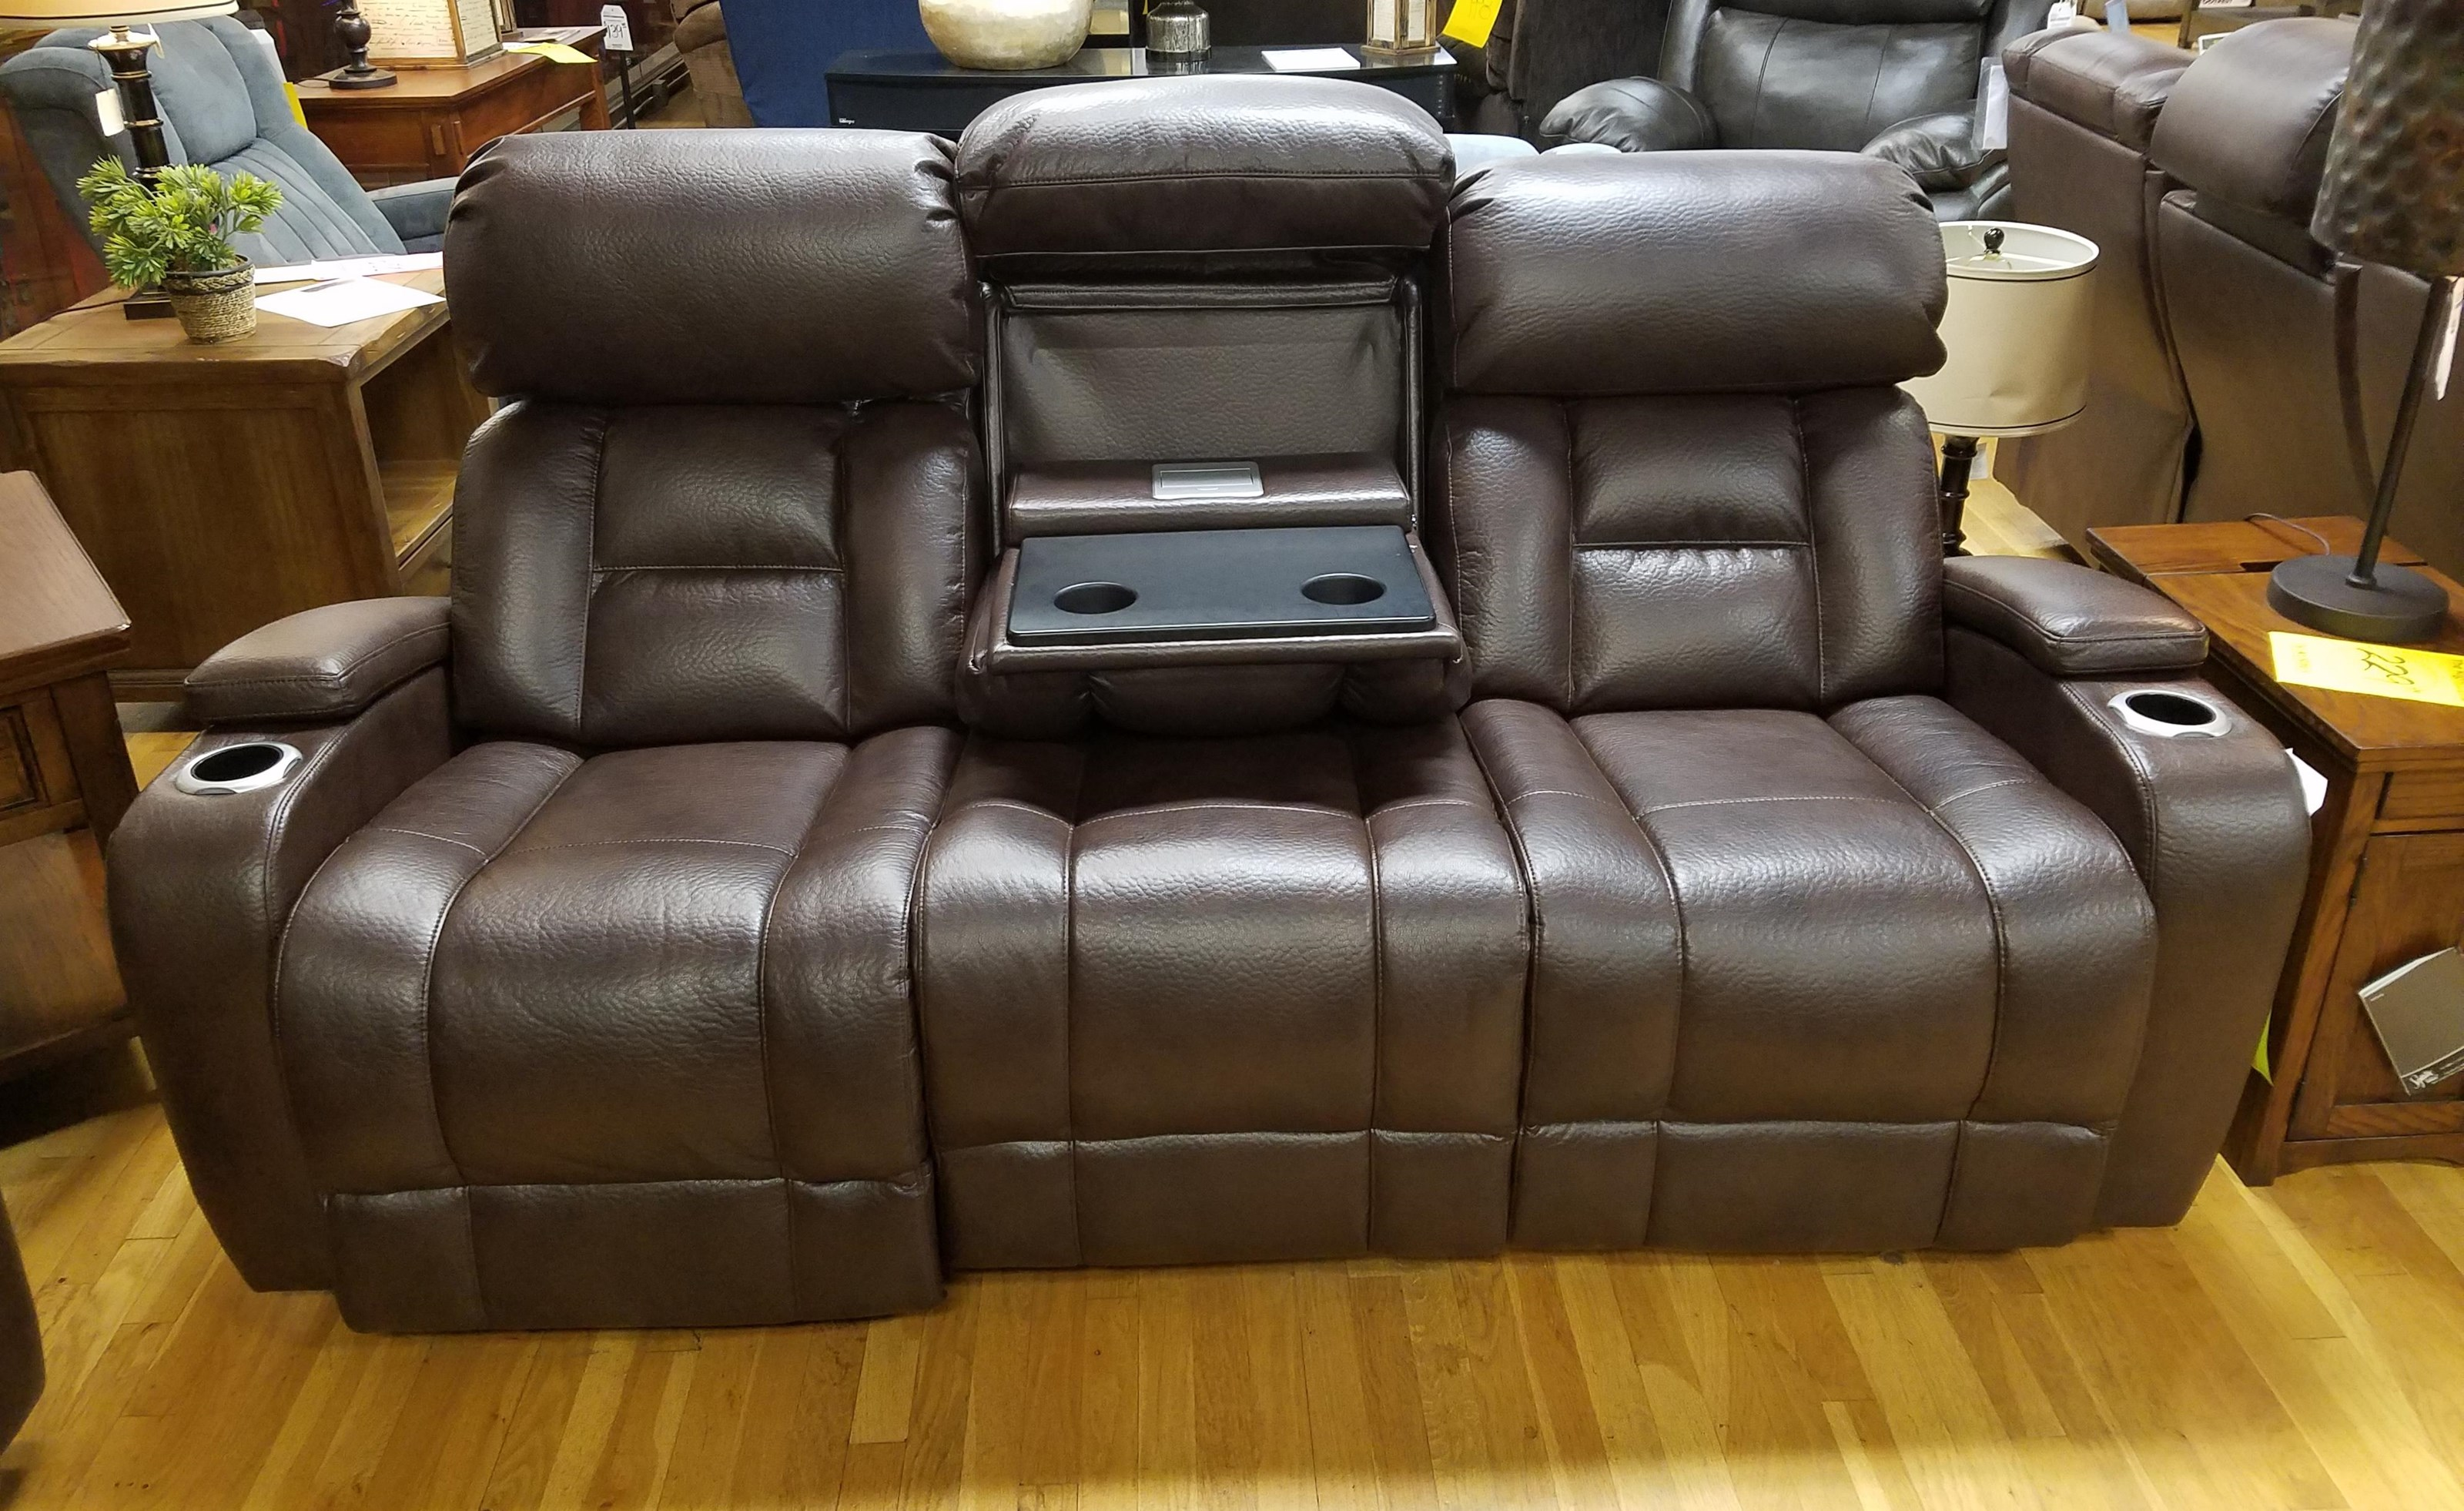 Synergy Home Furnishings 540 Power Rec. Sofa w/ Tray and Power Headrest - Item Number: 540522